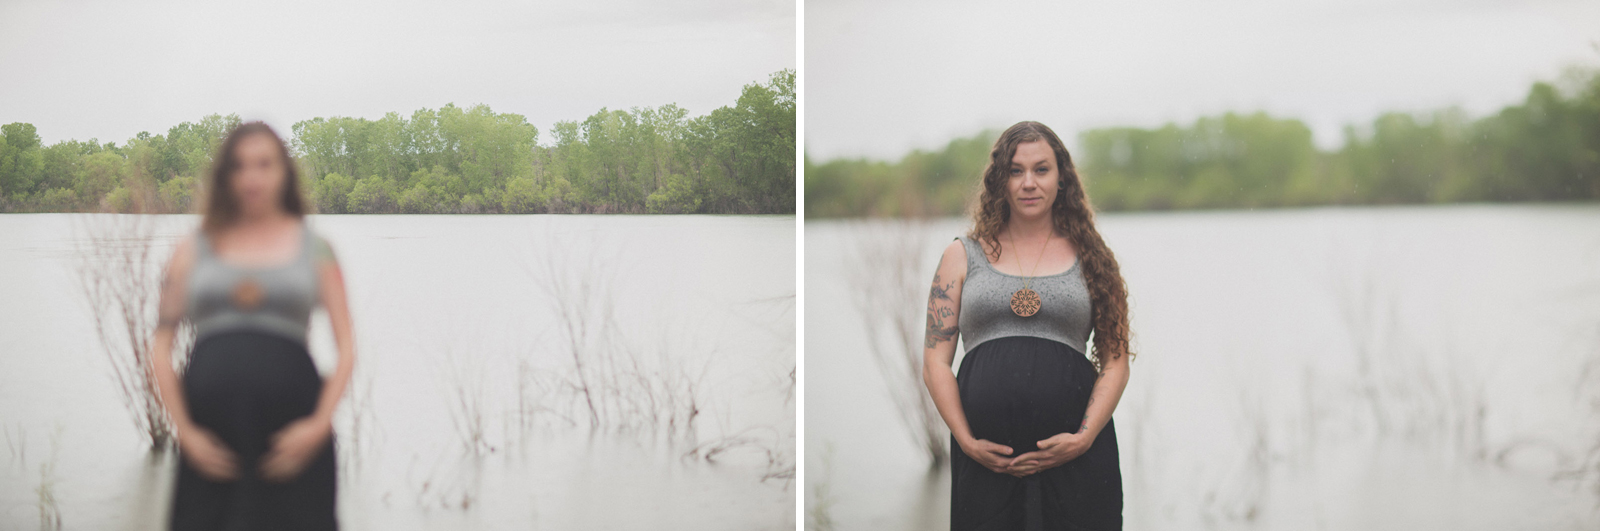 002-maternity-water-lake-branch-tree-summer-rain-woman-women-mom